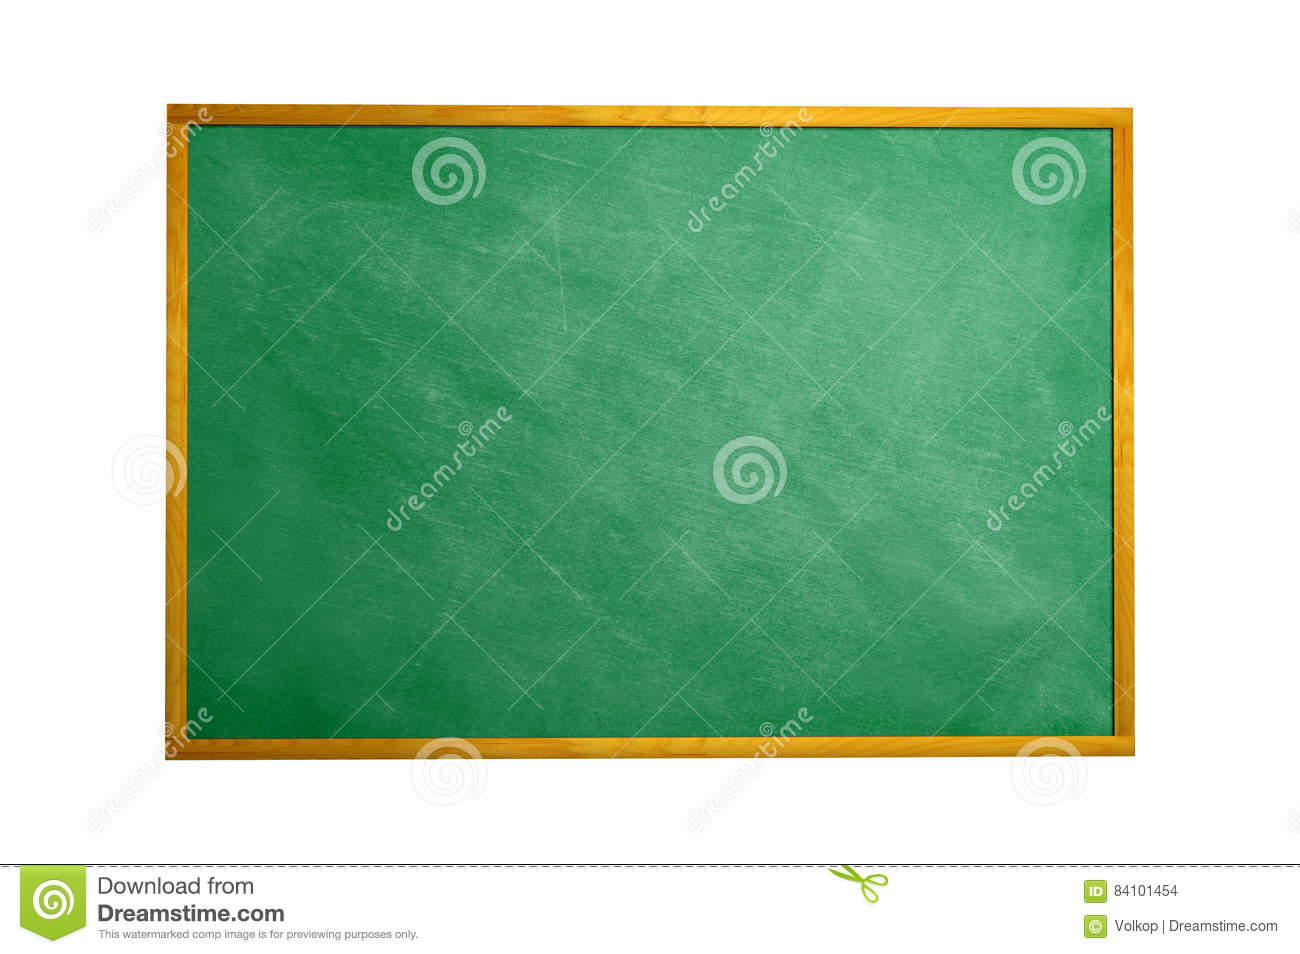 Download Chalkboard Blackboard With Frame Isolated. Black Chalk Board Tex Stock Photo - Image of primary, close: 84101454